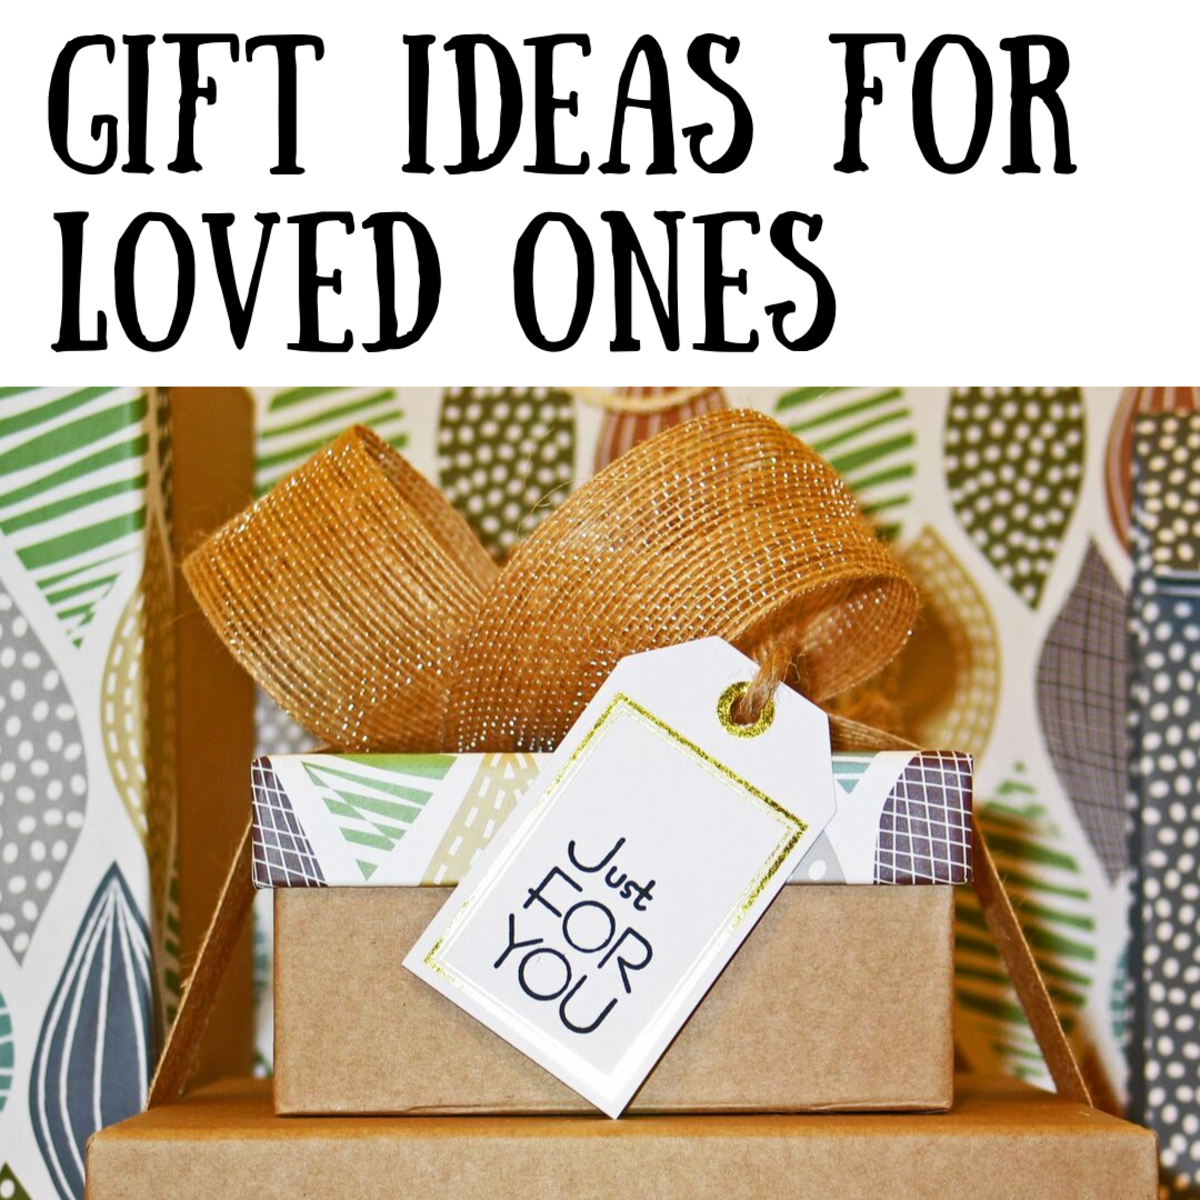 How to Find Special Gifts for Family and Loved Ones